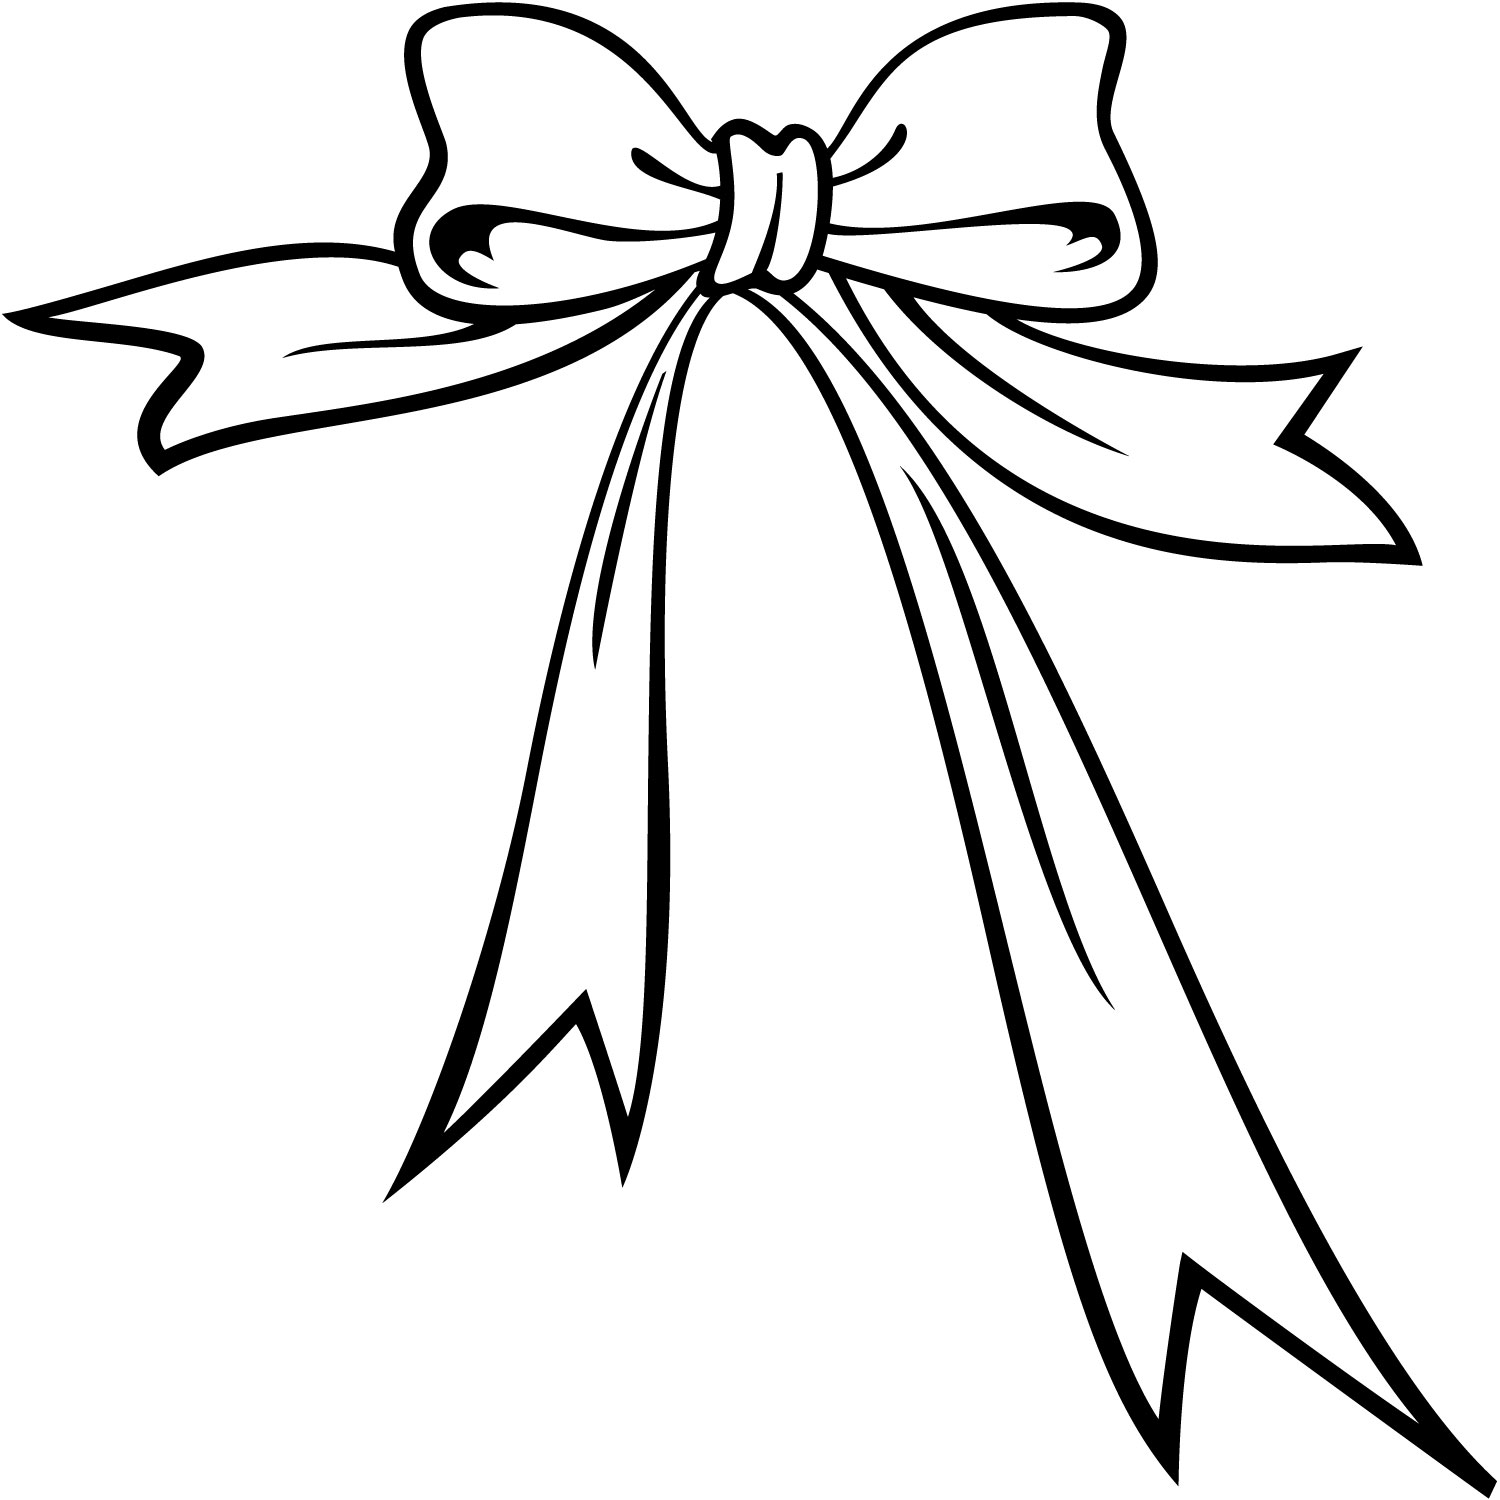 13 Vector Bow Free Cliparts That You Can Download To You Computer And